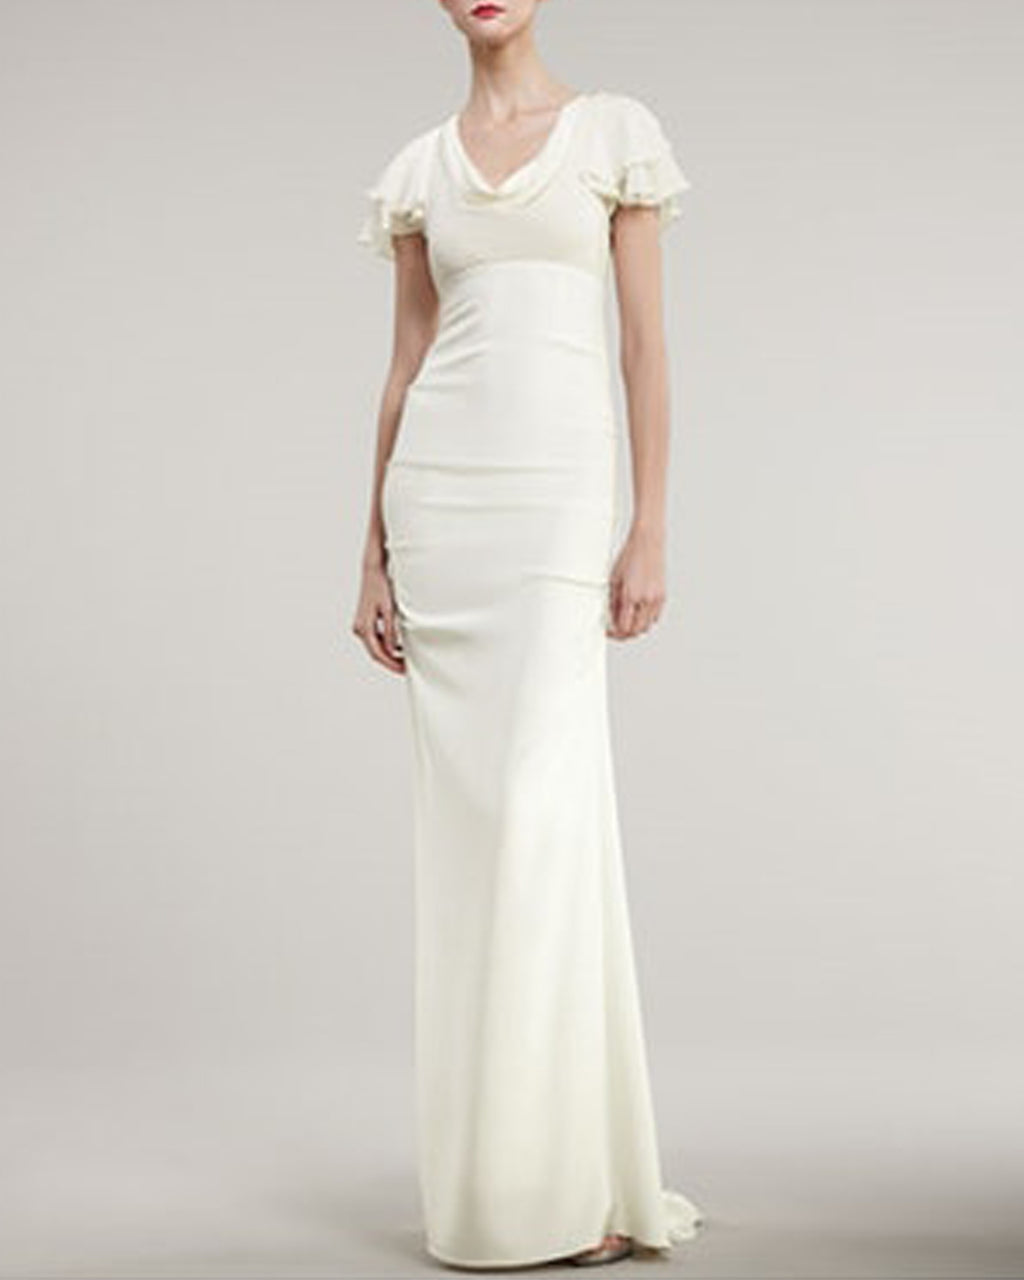 FA0035 - PIPPA HEAVY STRETCH CDC FRONT - samples - bridal - Final Sale Add 1 line break BRIDAL GOWN